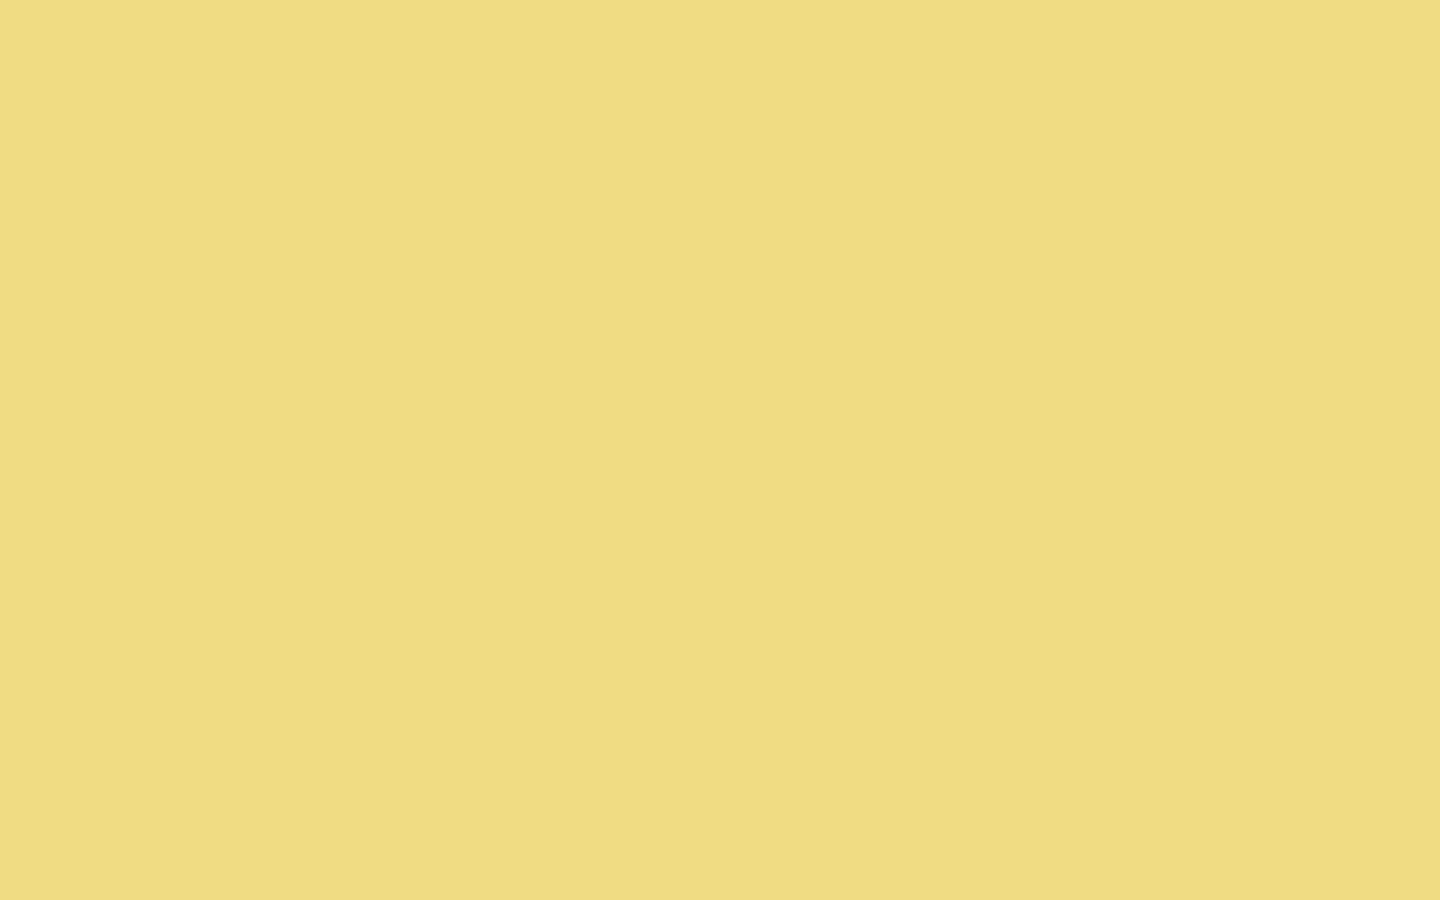 1440x900 Buff Solid Color Background